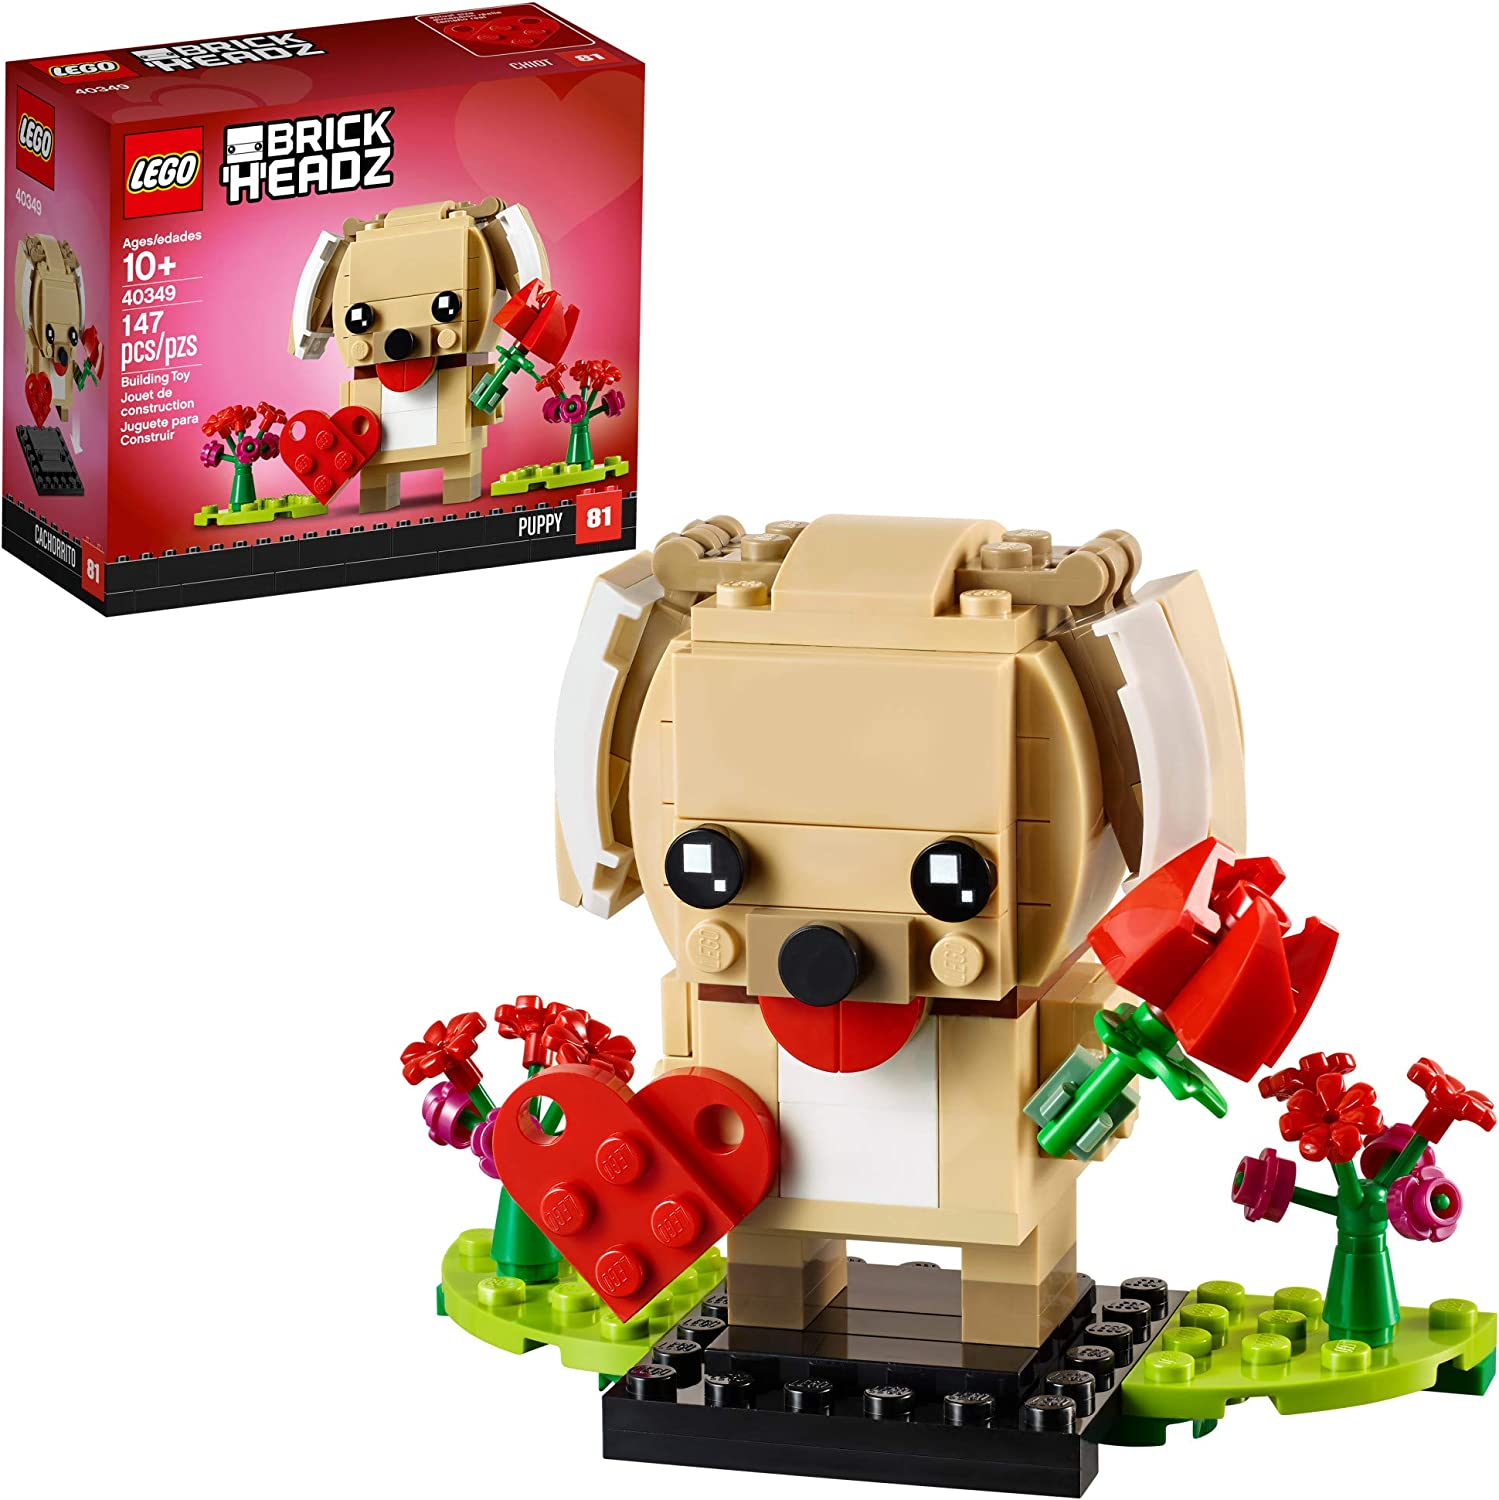 LEGO BrickHeadz 40349 Valentine's Puppy Building Kit (147 Pieces)